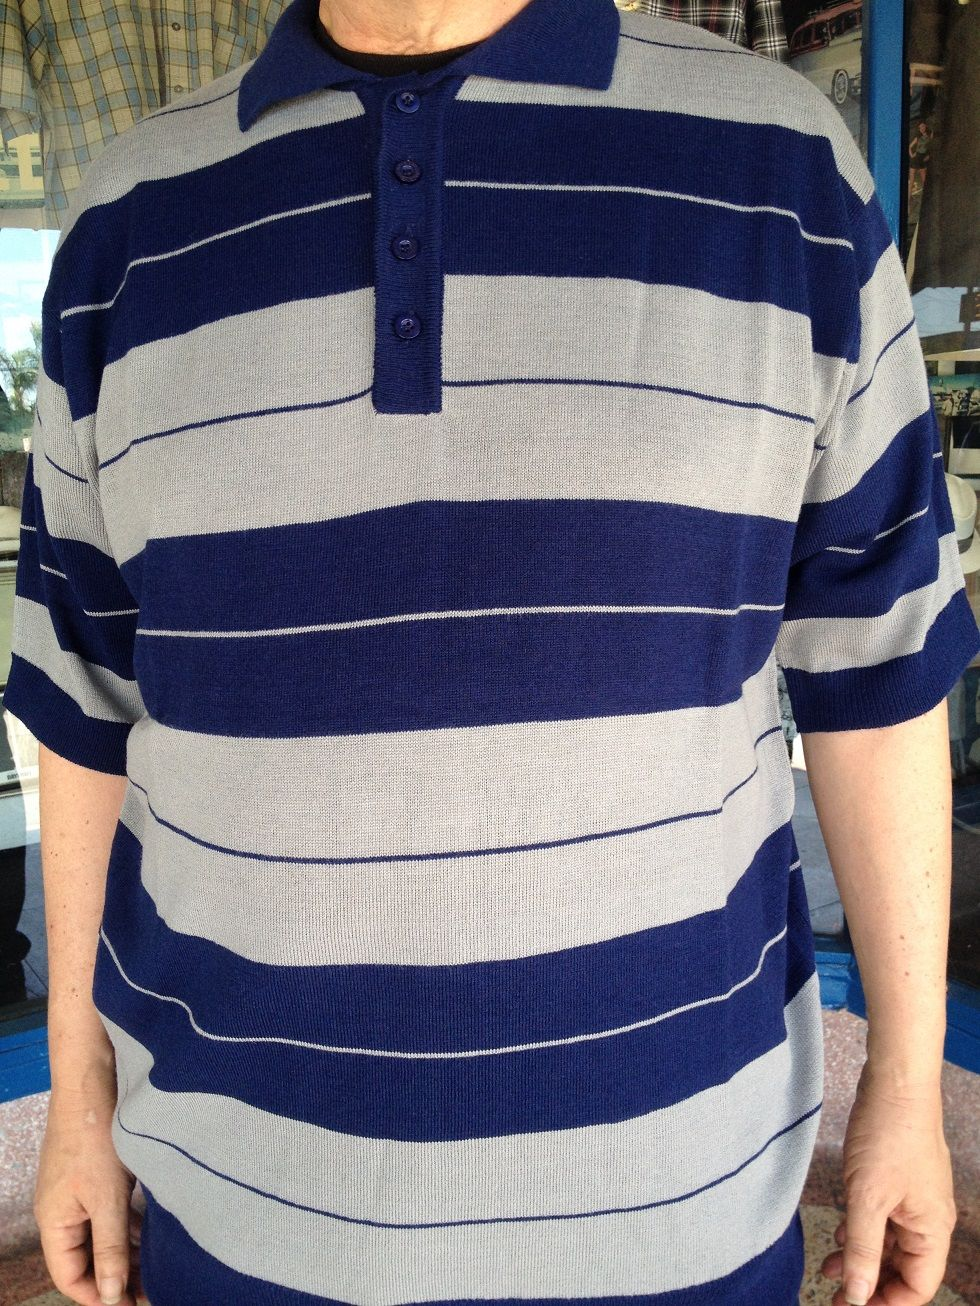 5d43e8a8d Lowrider charlie brown polo shirt blue gray in 2019